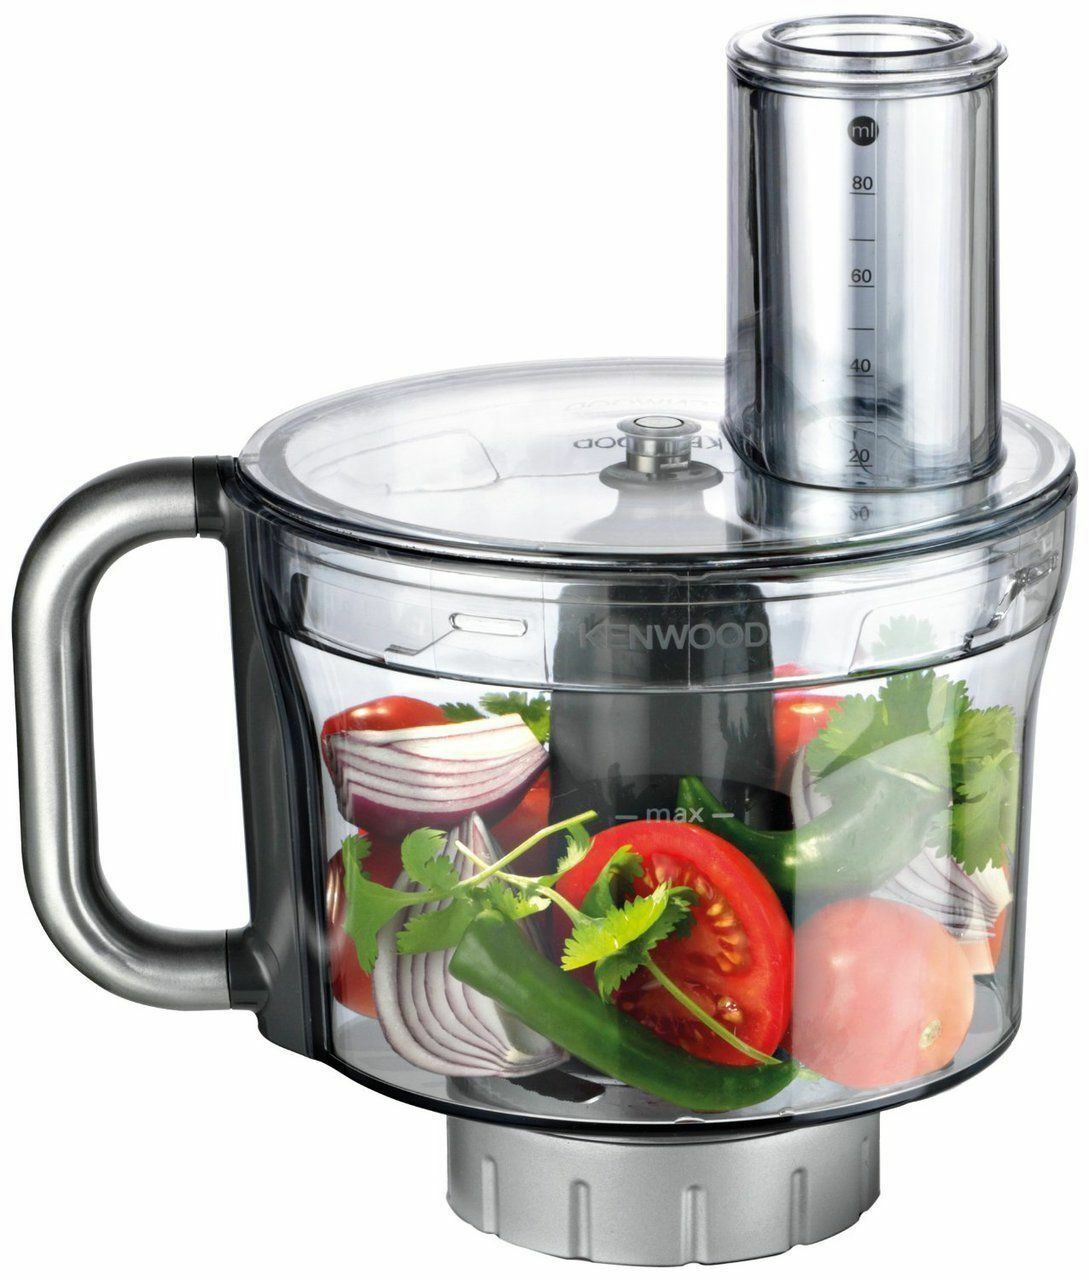 1 X Kenwood KAH647PL CHEF MAJOR Food Processor attachement pour tous les Chef et Major